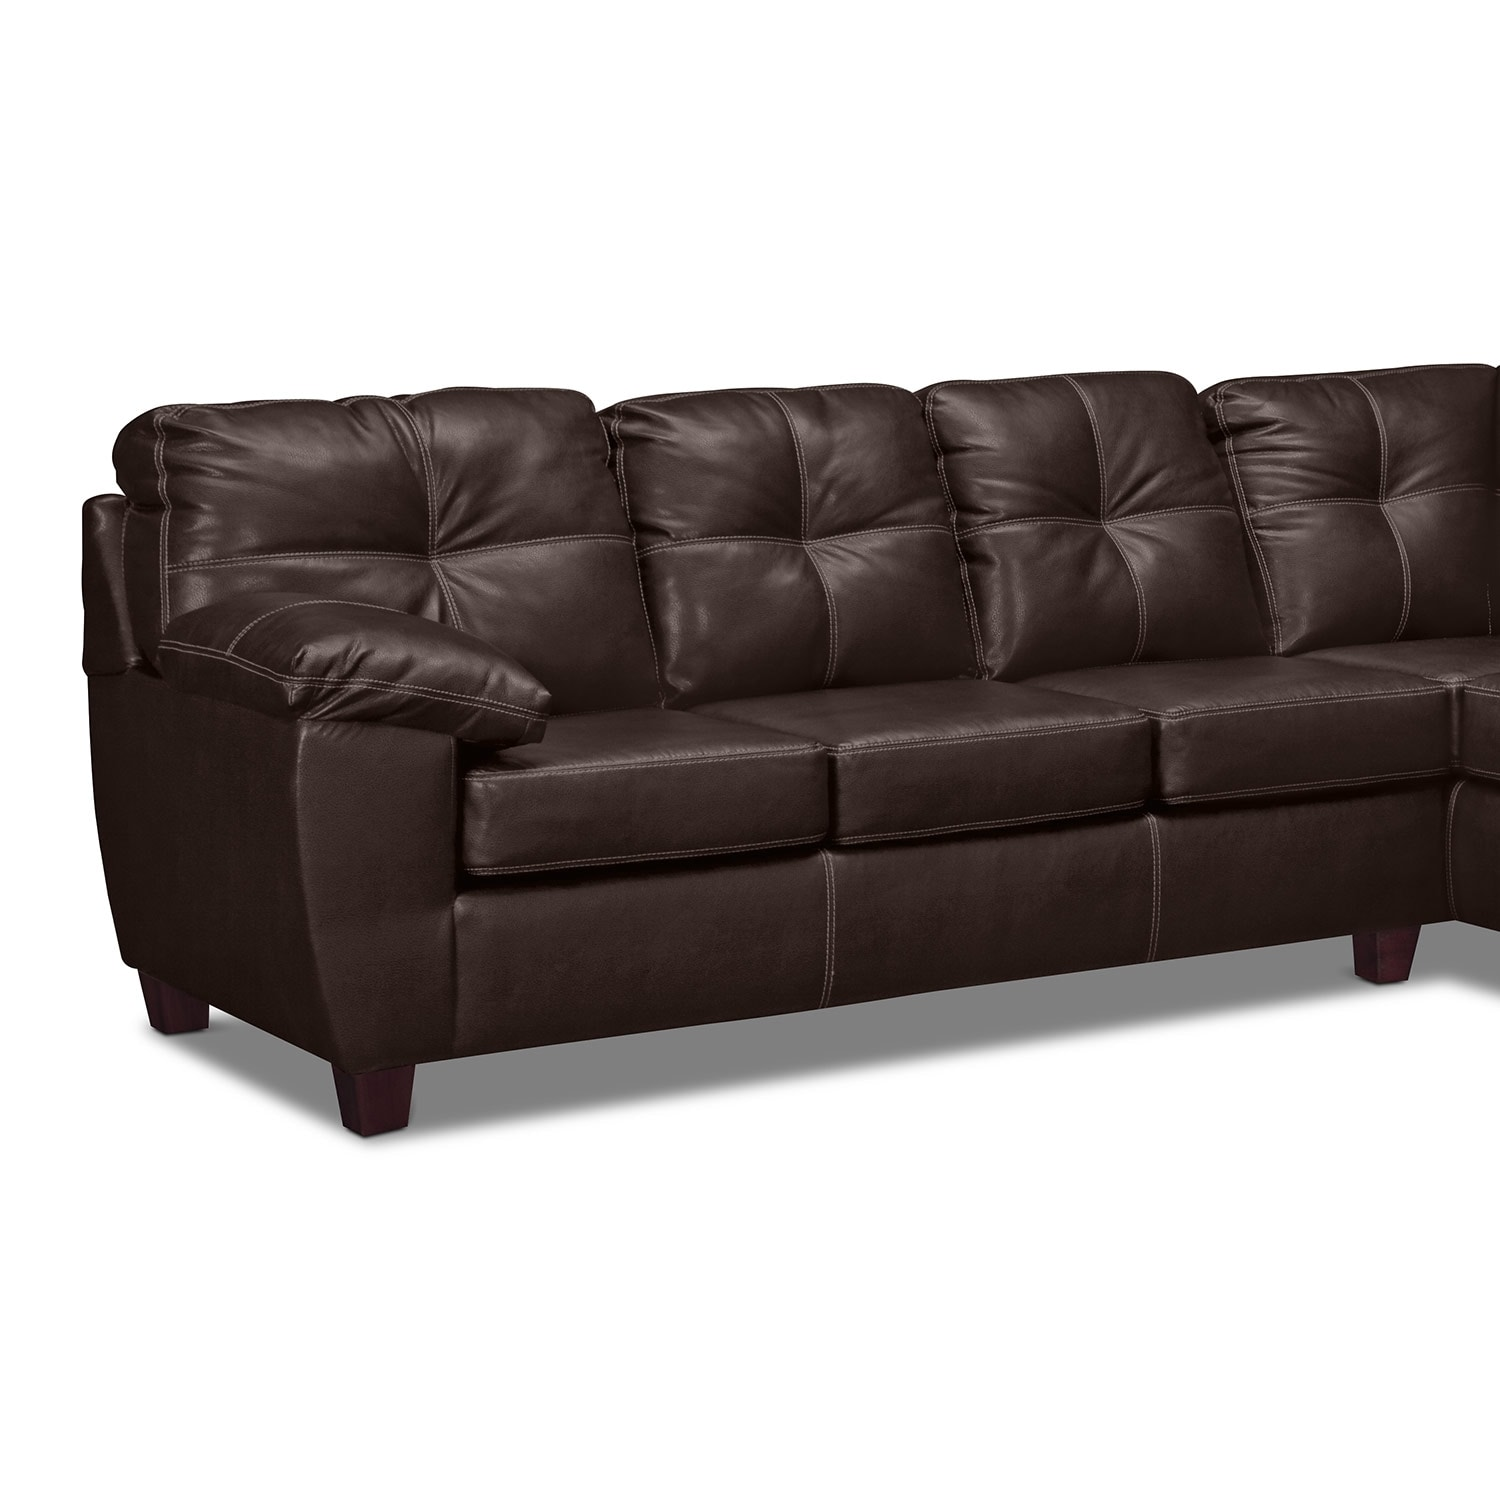 Ricardo 2 Piece Sectional with Right Facing Sofa Brown